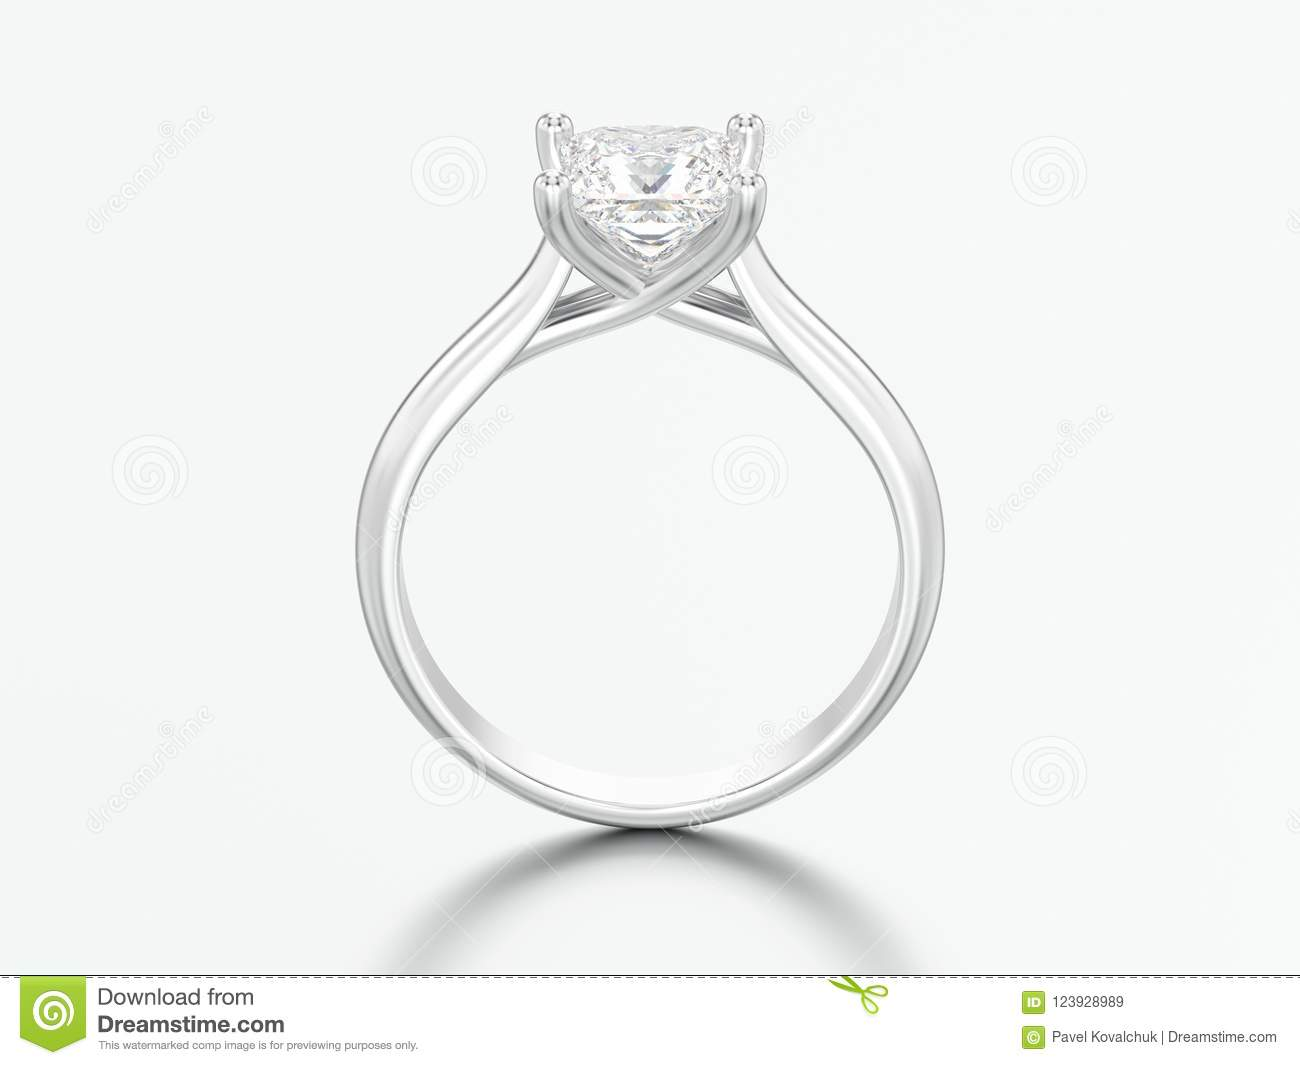 3D illustration white gold or silver engagement illusion twisted